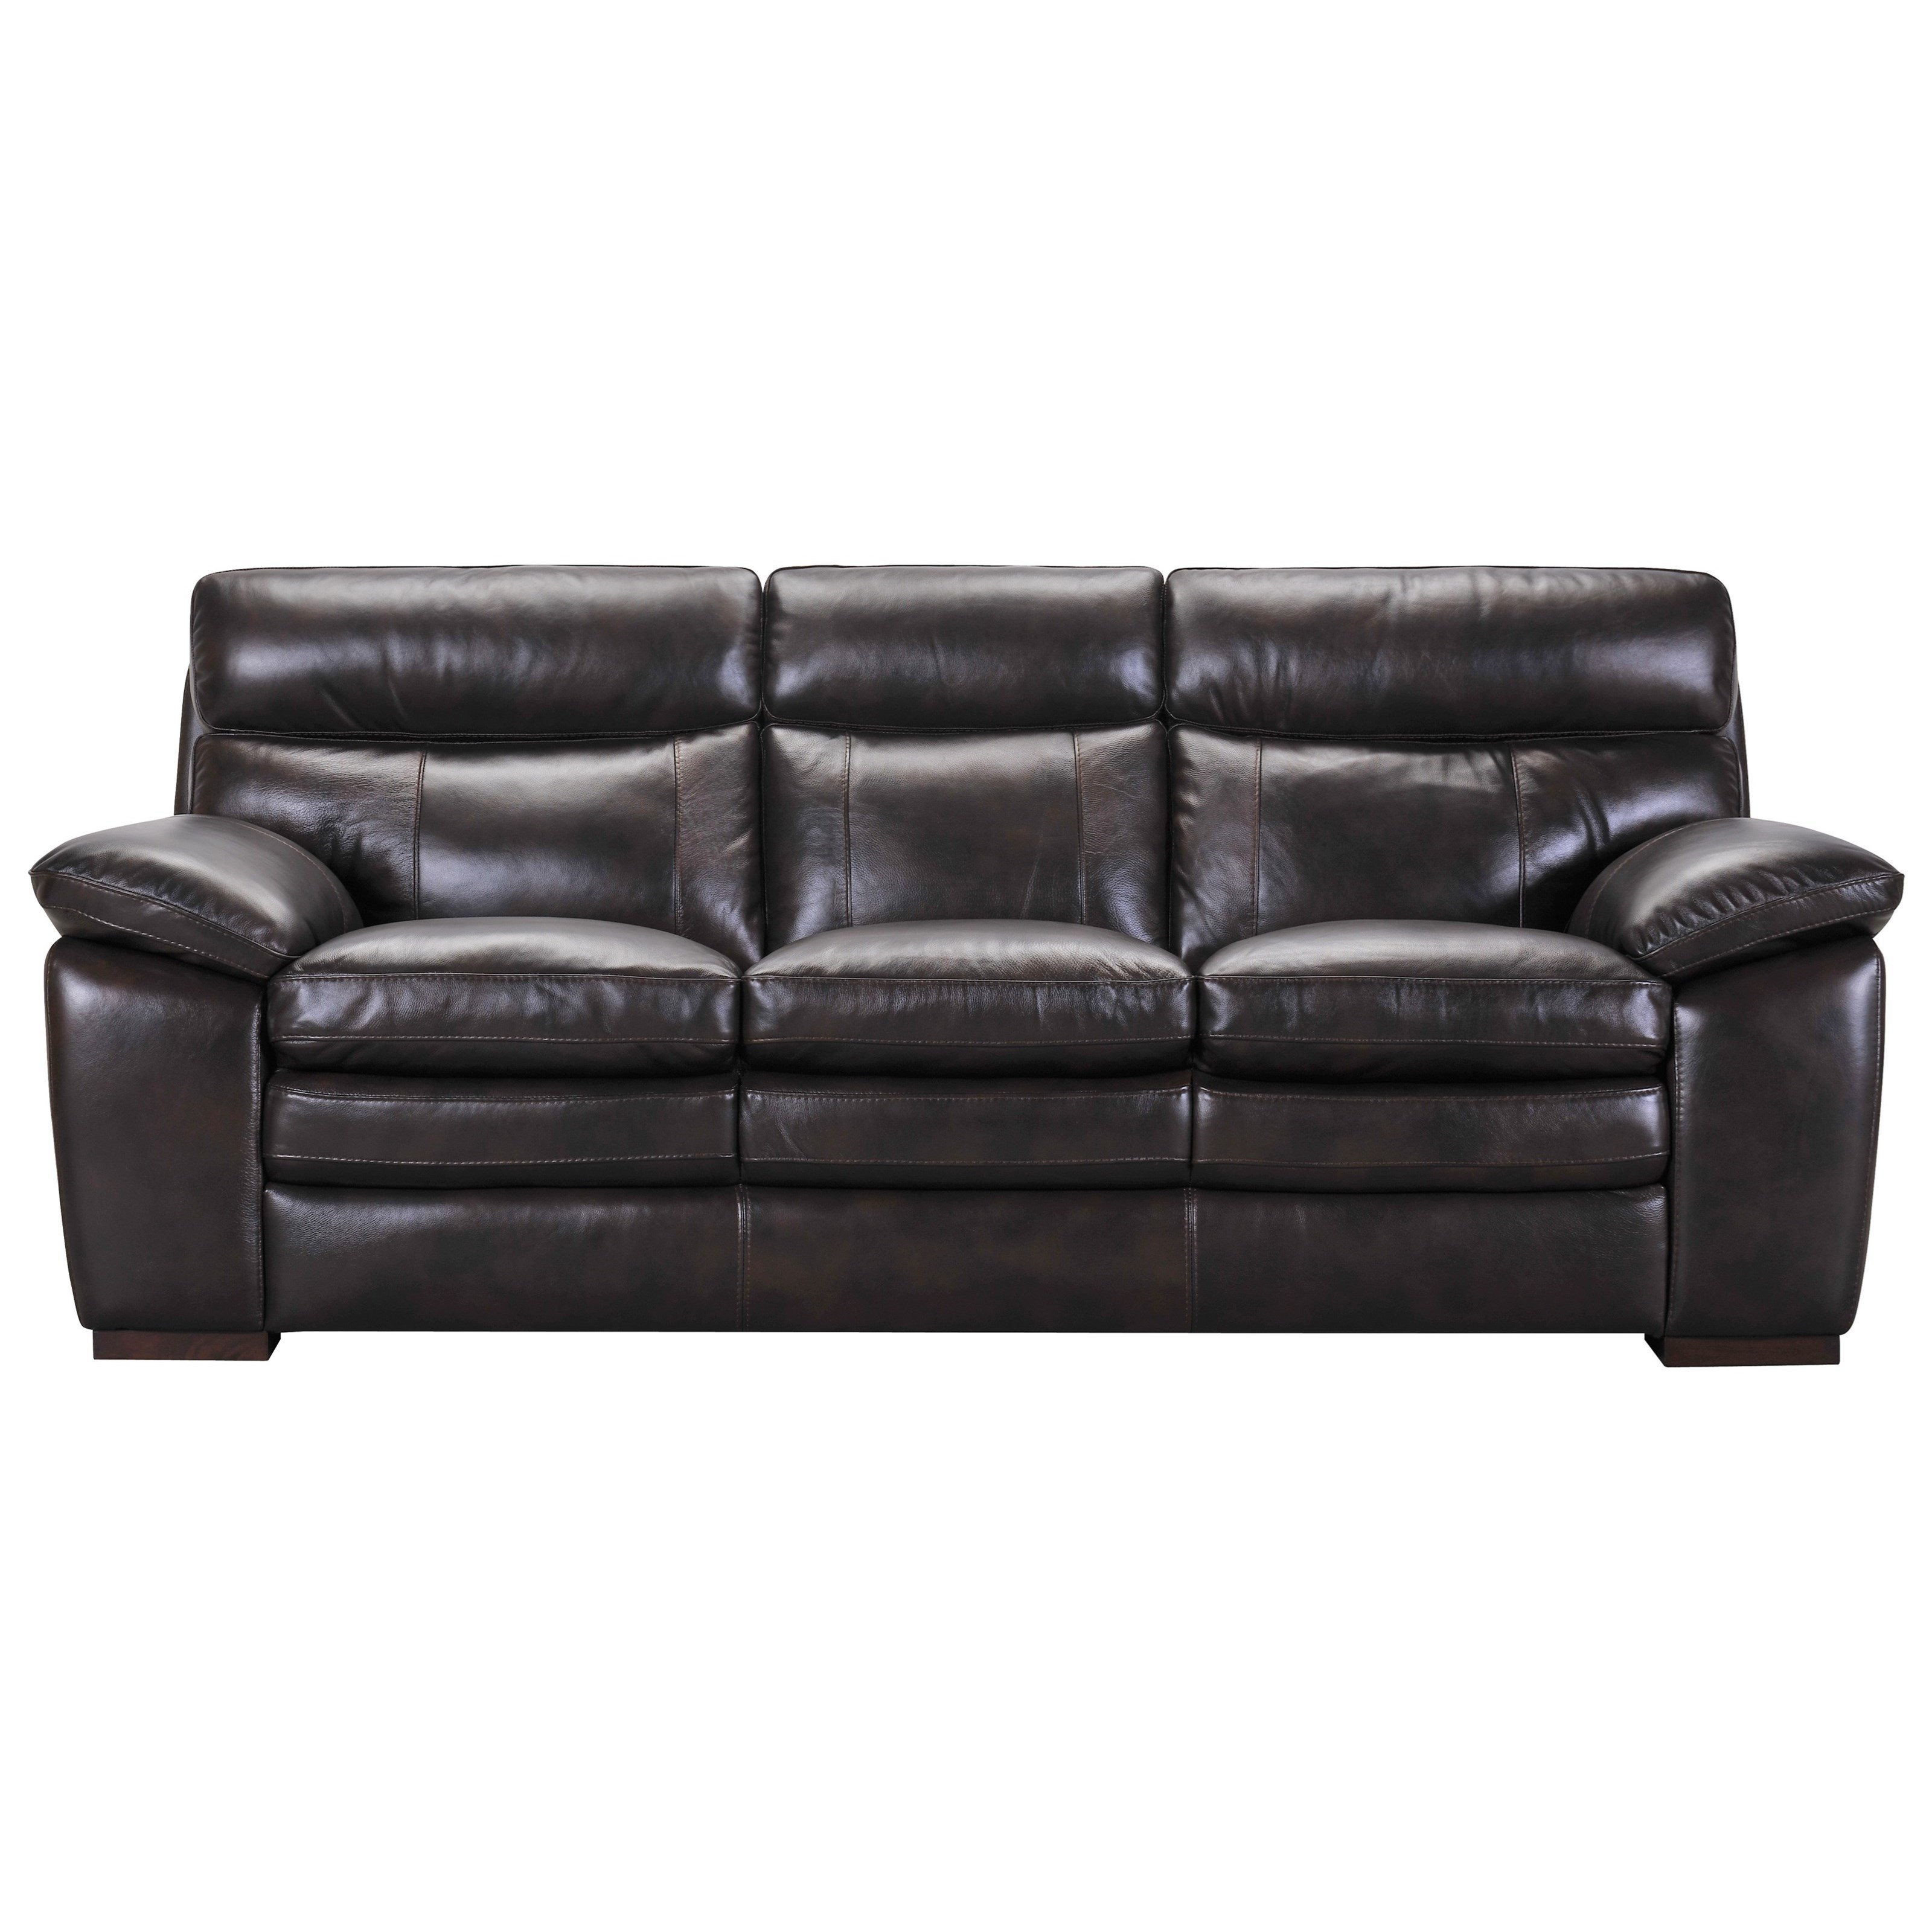 3658 Sofa by Violino at Furniture Superstore - Rochester, MN